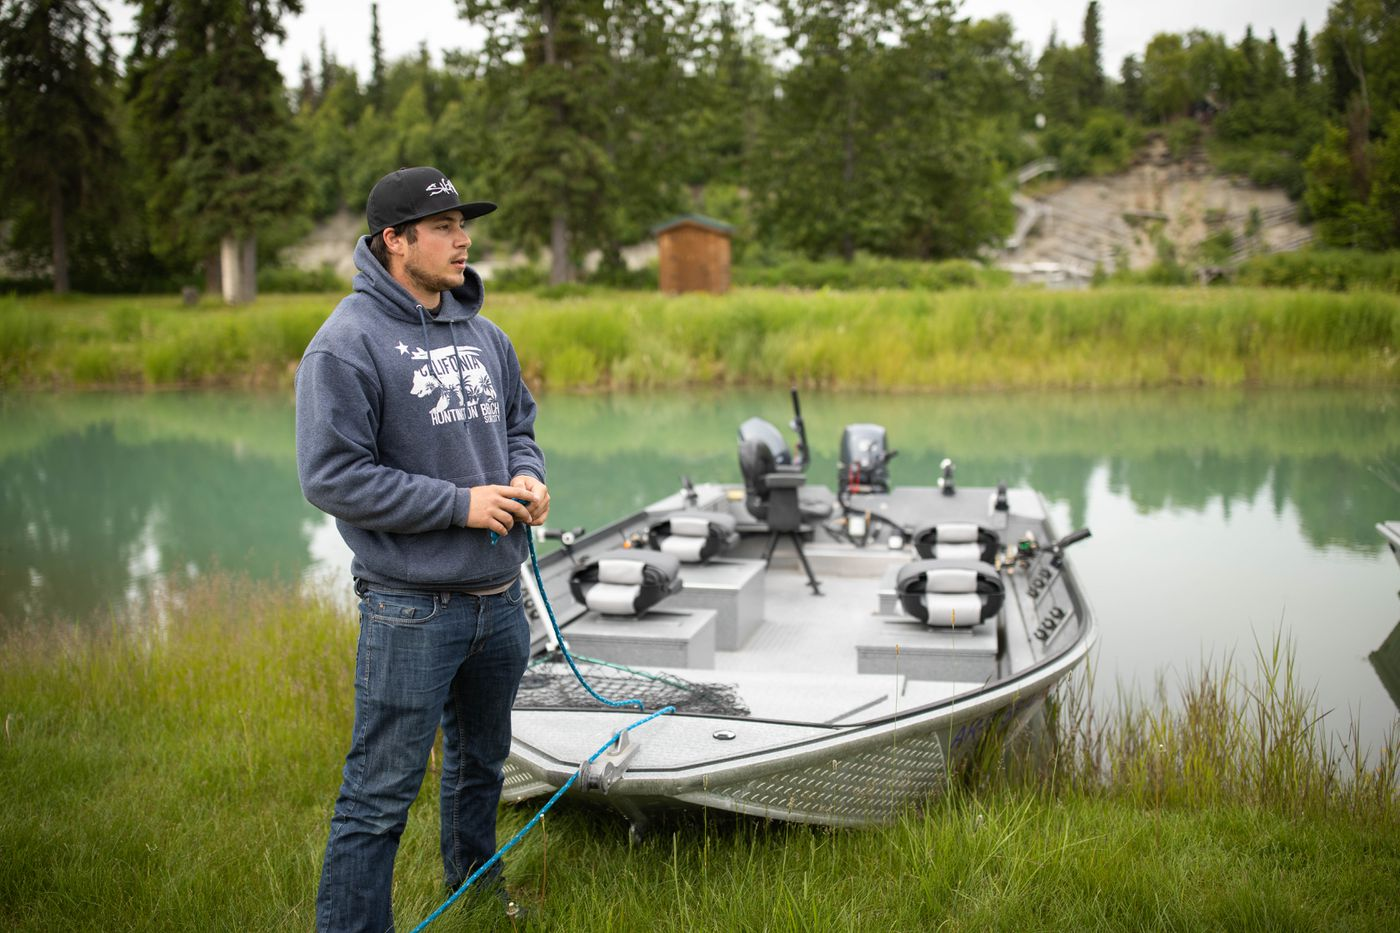 Chad Porterfield, a fishing guide at RW's Fishing and Big Eddy Resort on the outskirts of Soldotna, ties up a boat at the resort on Friday, June 29, 2018. Fishing for king salmon is a top draw for most anglers visiting the Kenai River, and this summer's closures are leaving guides scrambling to offer their guests alternatives. (Loren Holmes / ADN)